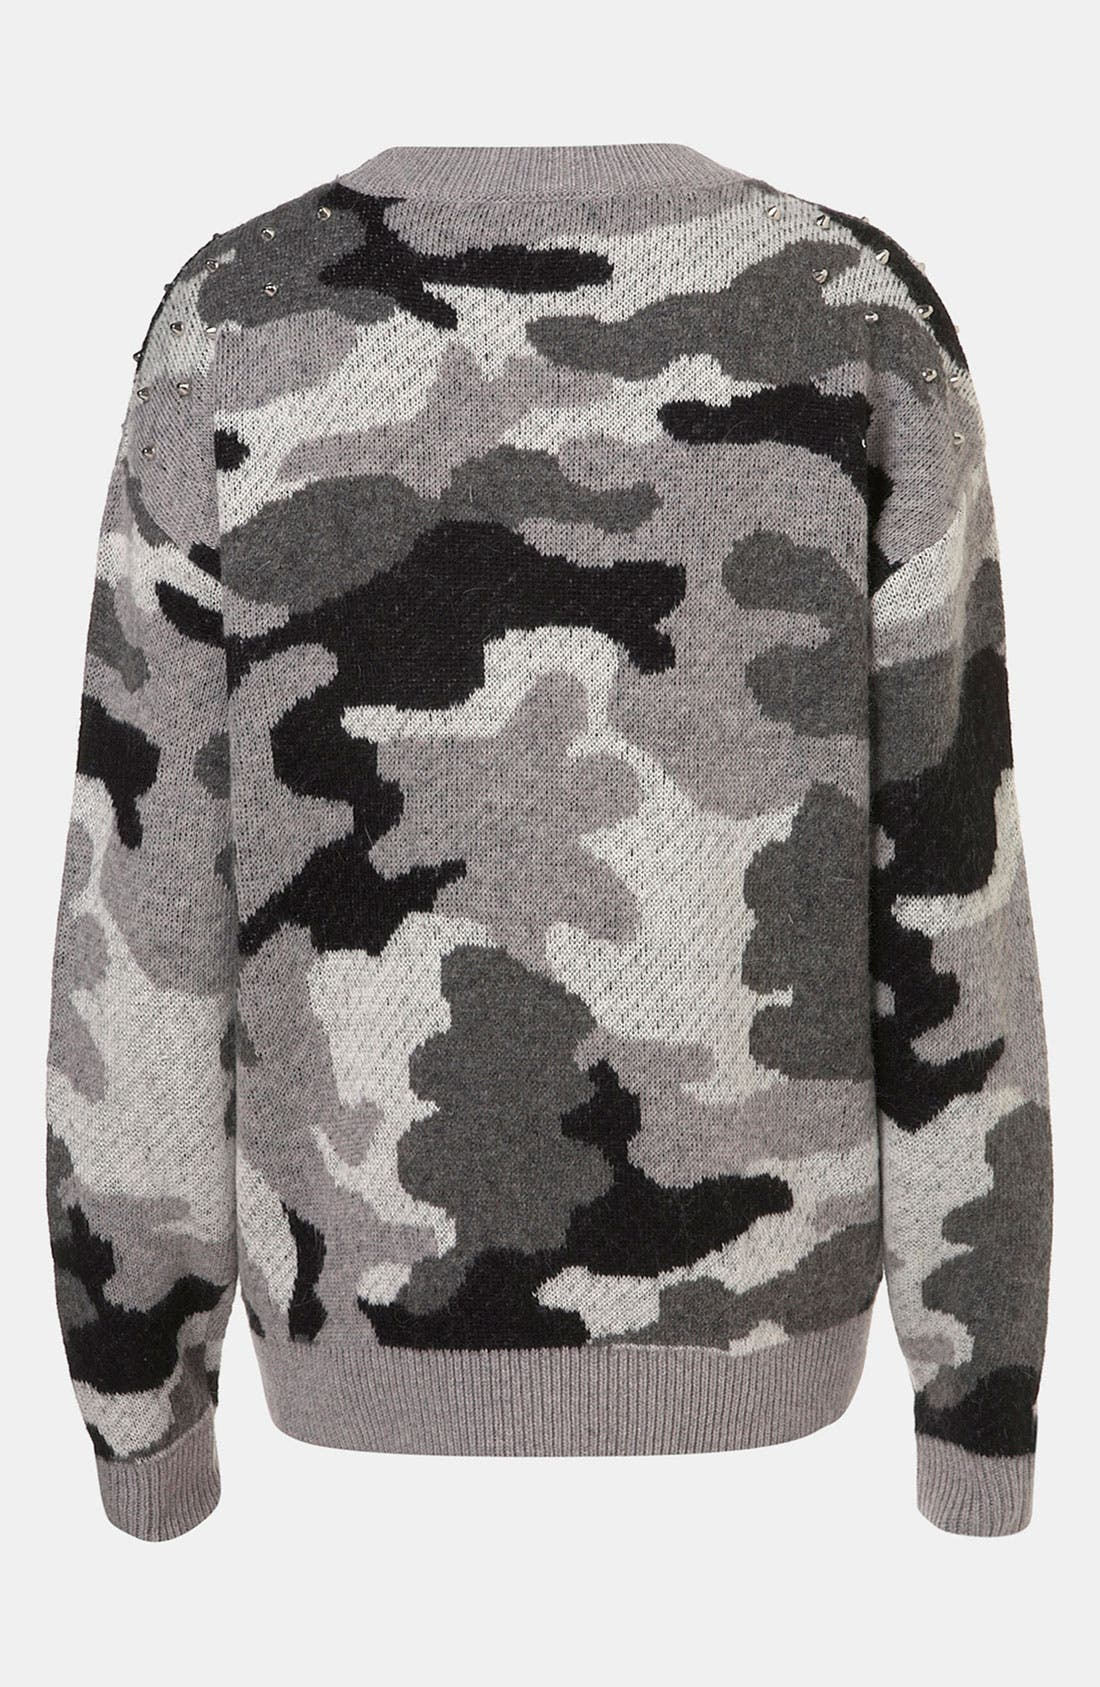 Studded Camouflage Sweater,                             Main thumbnail 1, color,                             020